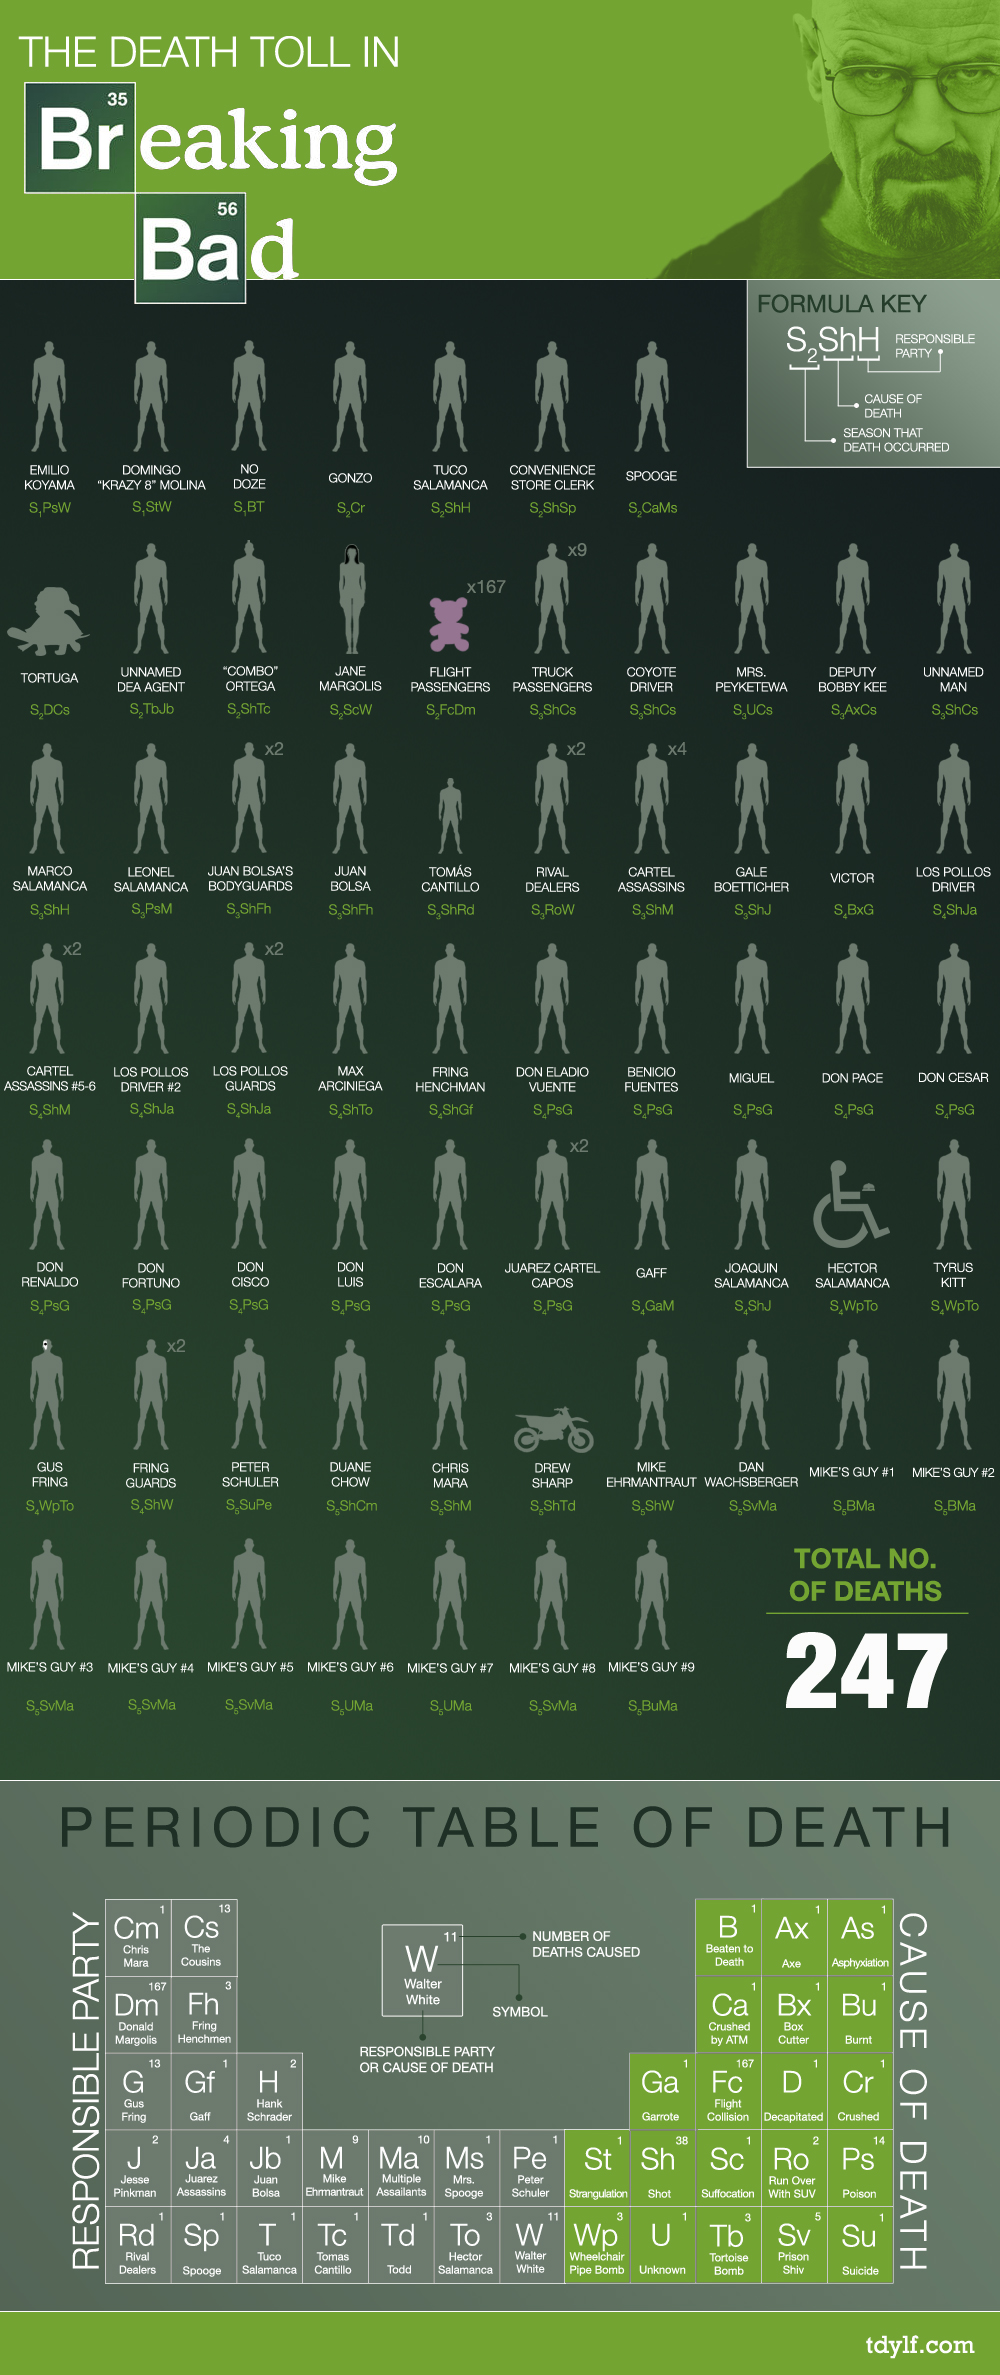 Breaking Bad Death Toll-Infographic